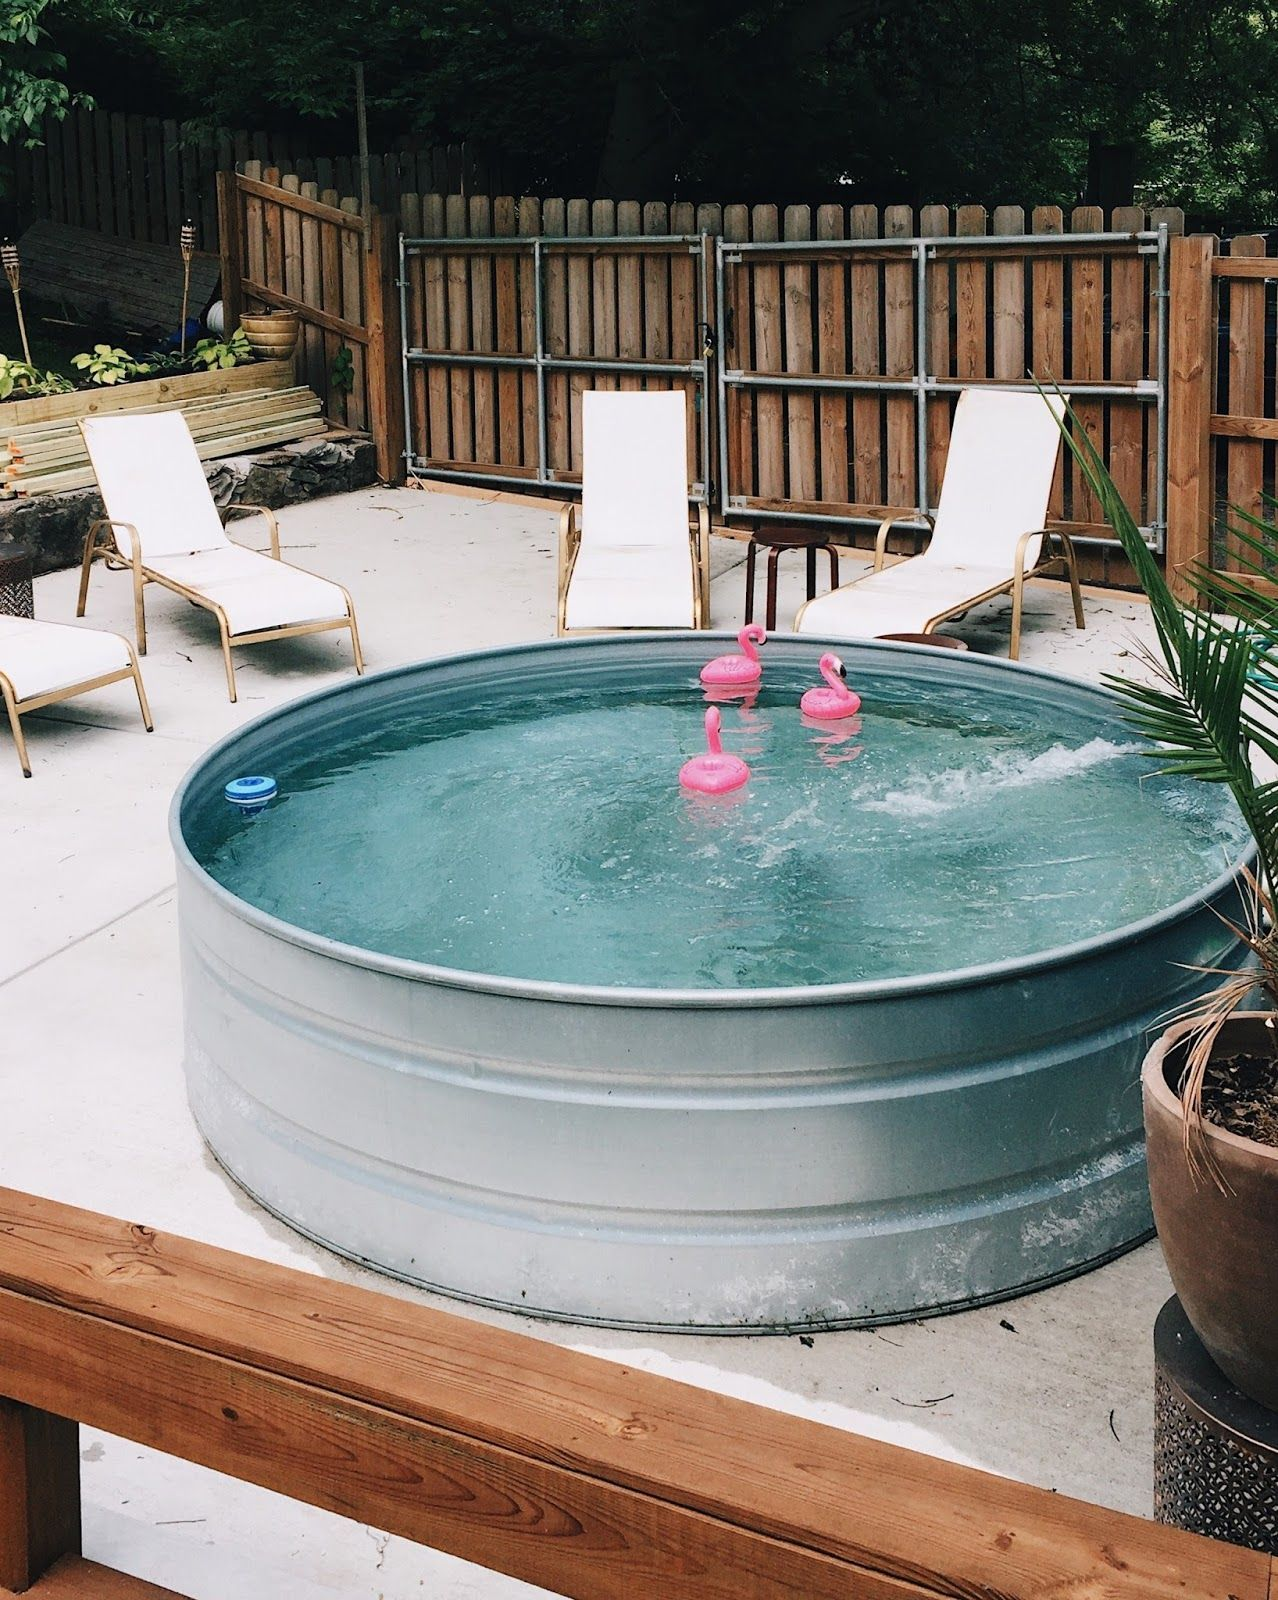 How To Make Your Own Stock Tank Pool This Summer | Stock ...